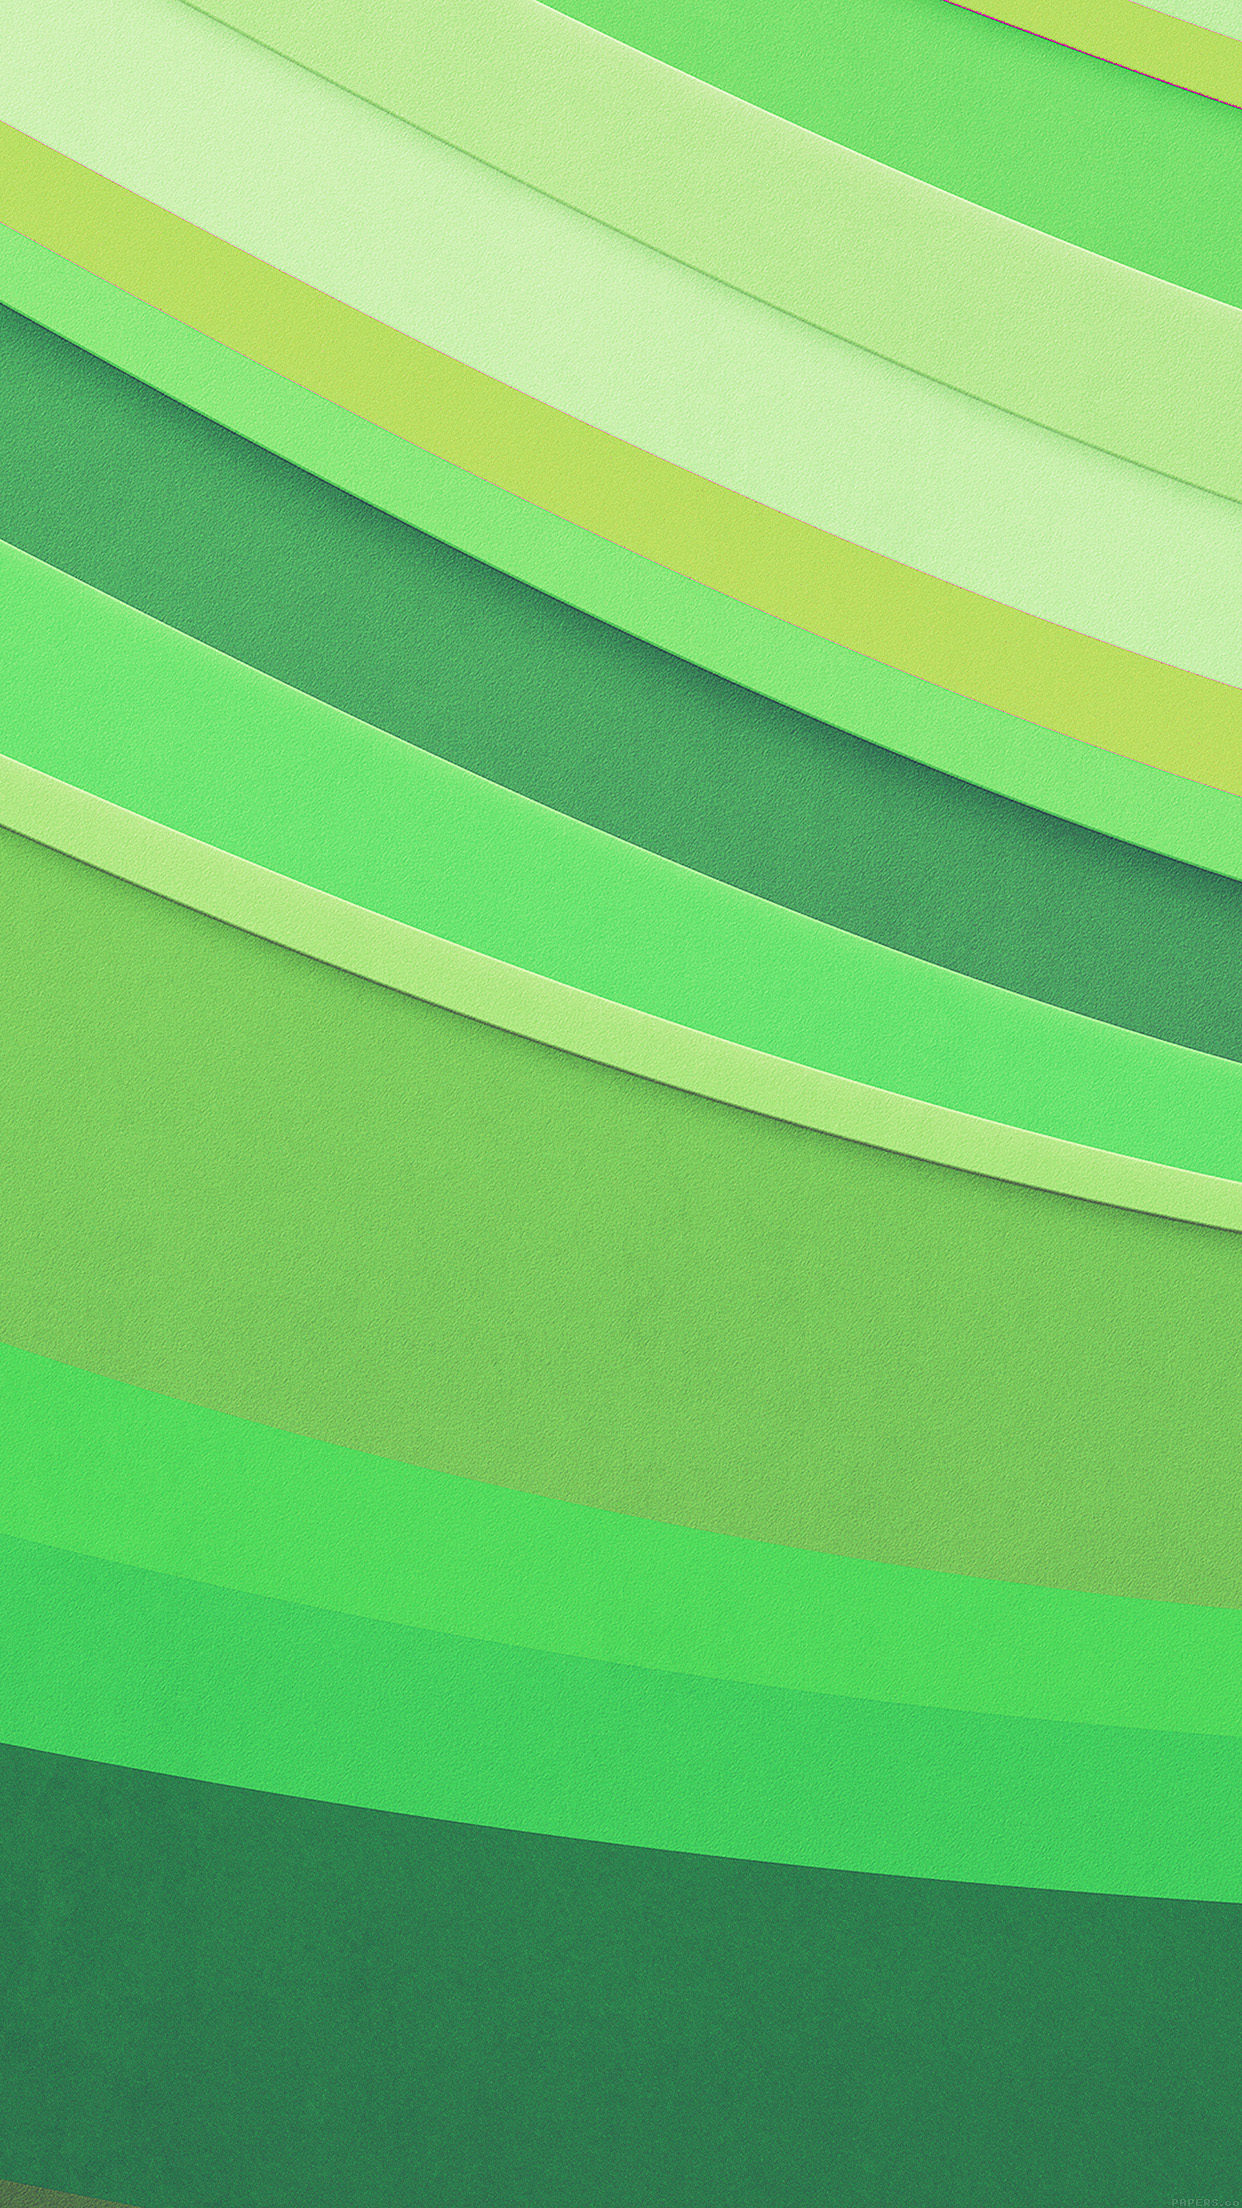 Sea Abstract Green Graphic Art Pattern Android wallpaper